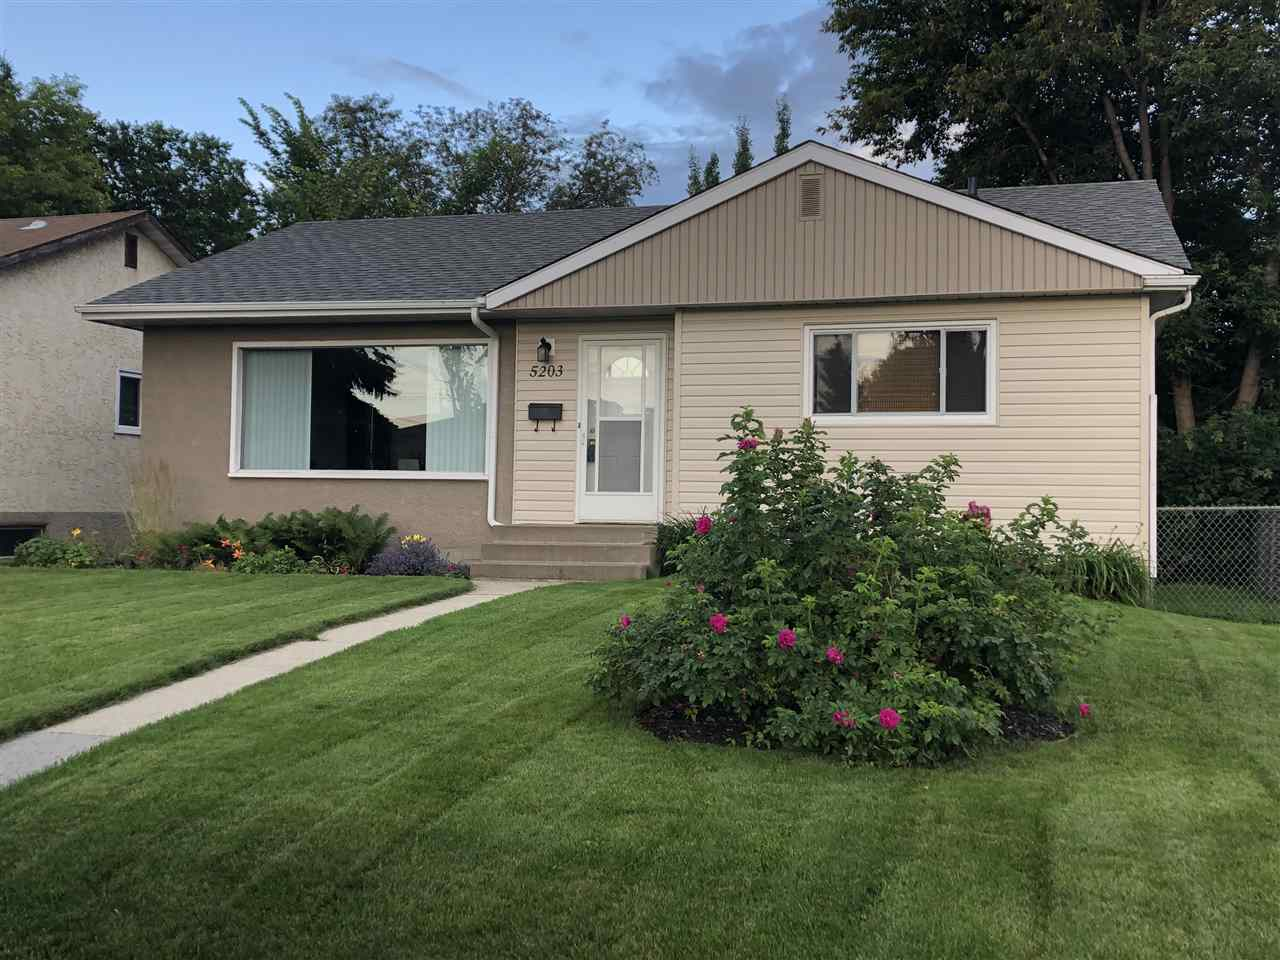 MLS® listing #E4170290 for sale located at 5203 106 Avenue